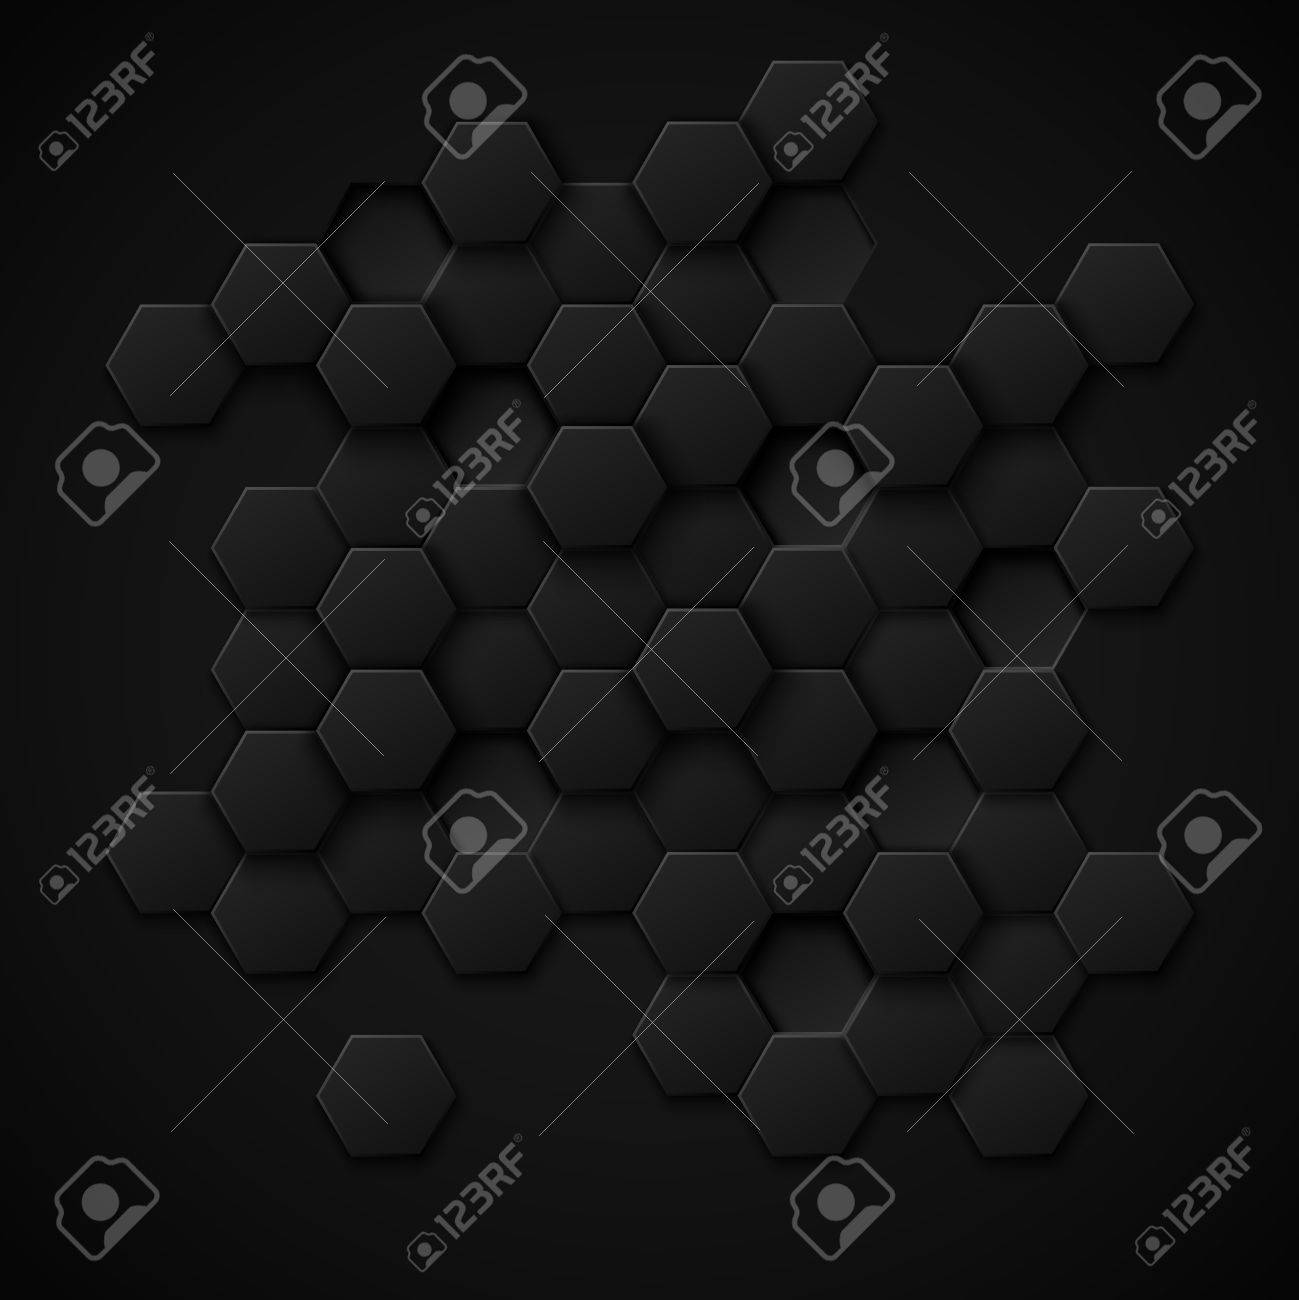 Carbon technology vector abstract background. Design metal black, texture industrial material illustration - 51643715